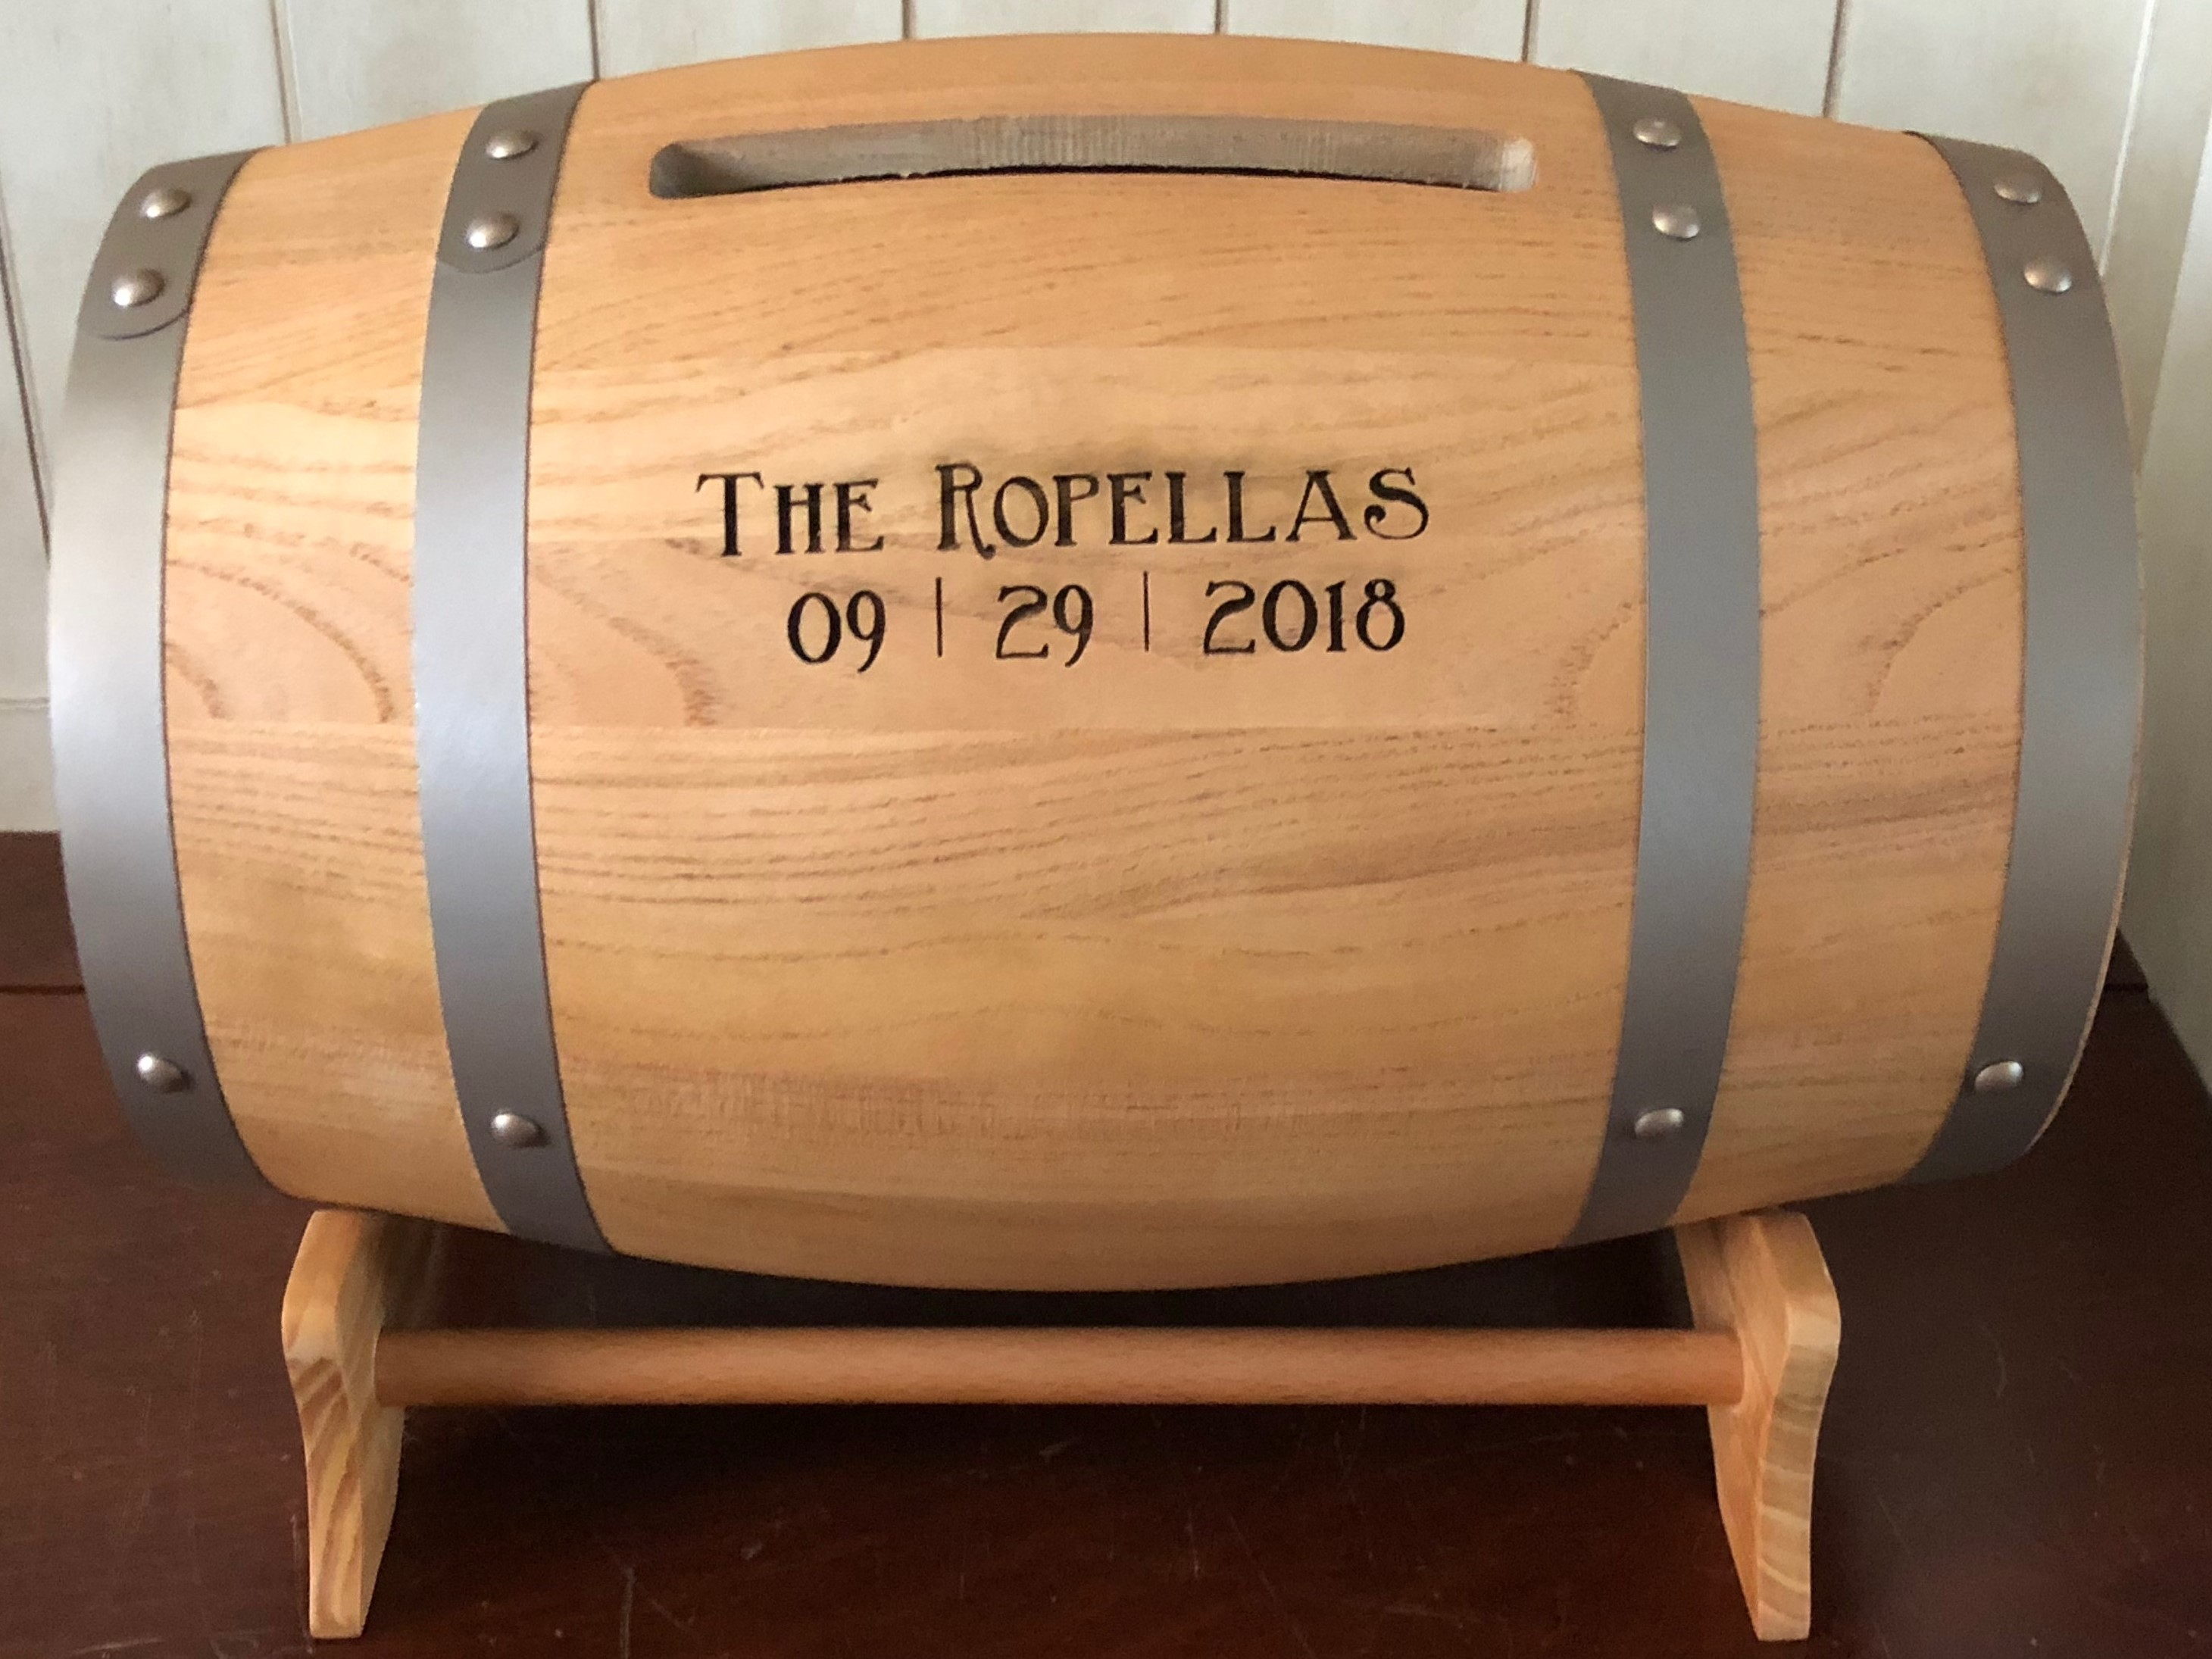 Wedding gift card holder wood wine barrel personalized we have several wine barrels planned for use in the venue and this will really go great with the theme we were impressed with the personalization altavistaventures Gallery